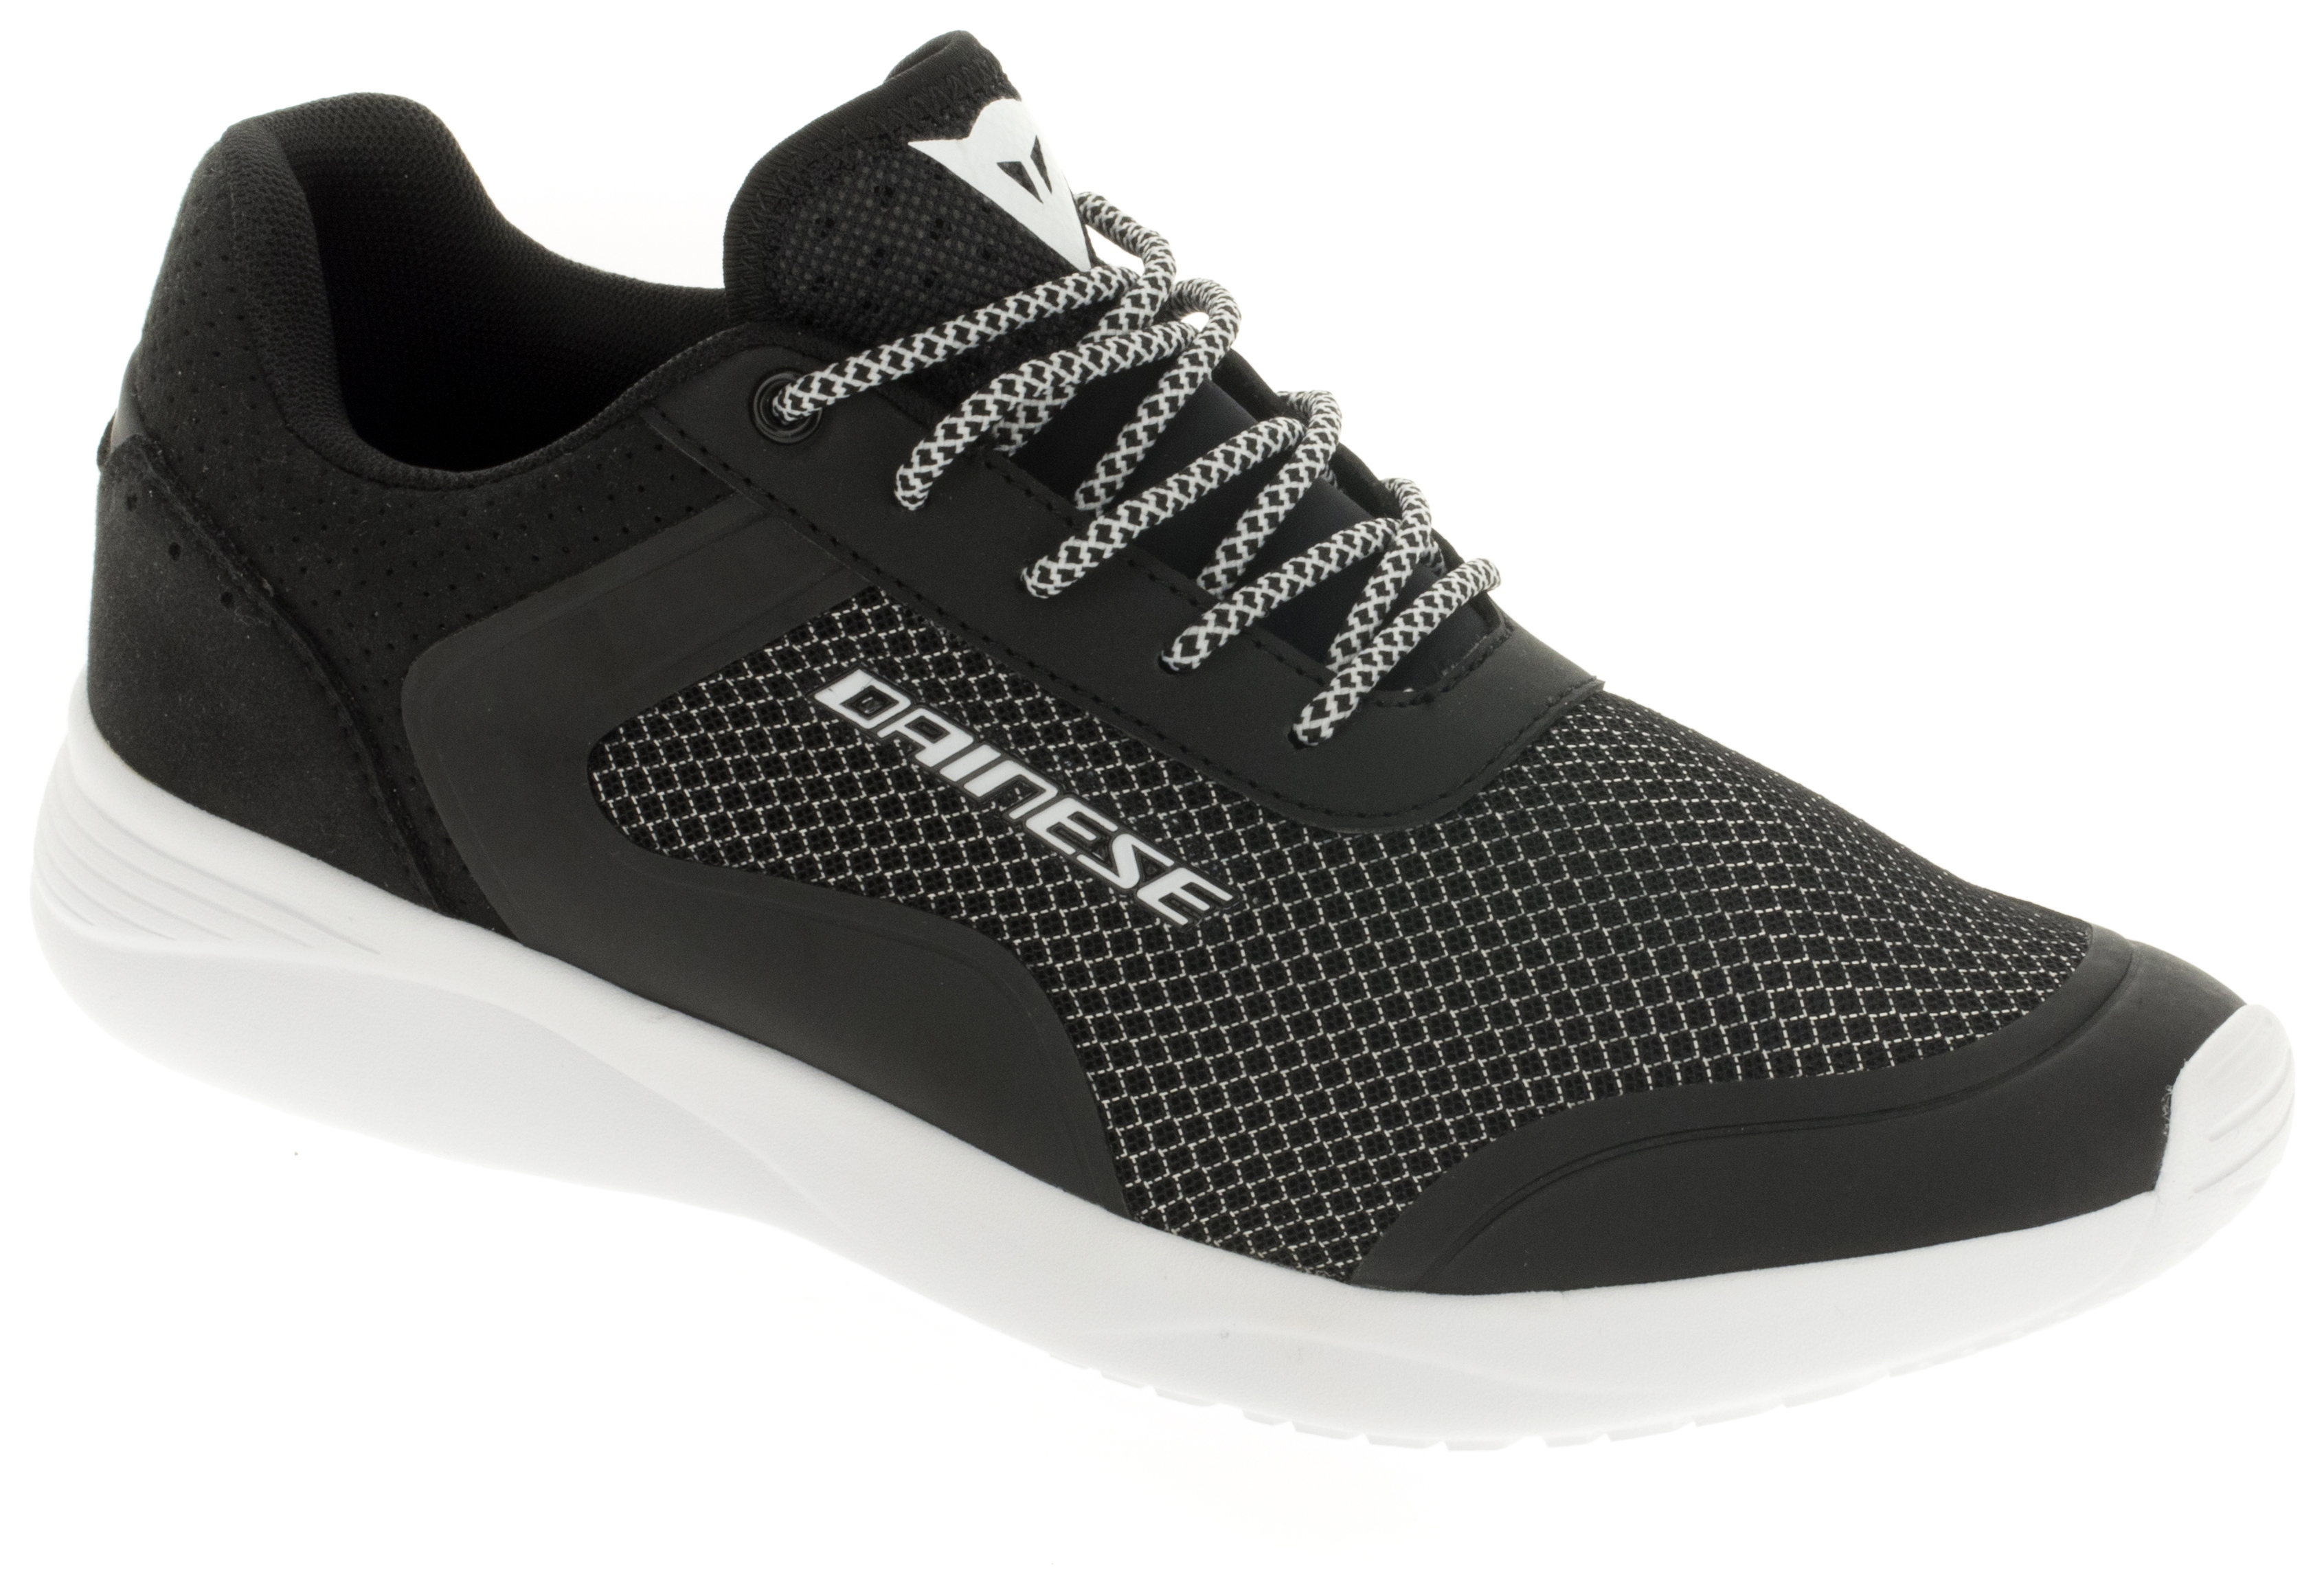 Dainese Afterace Shoes Cycle Gear